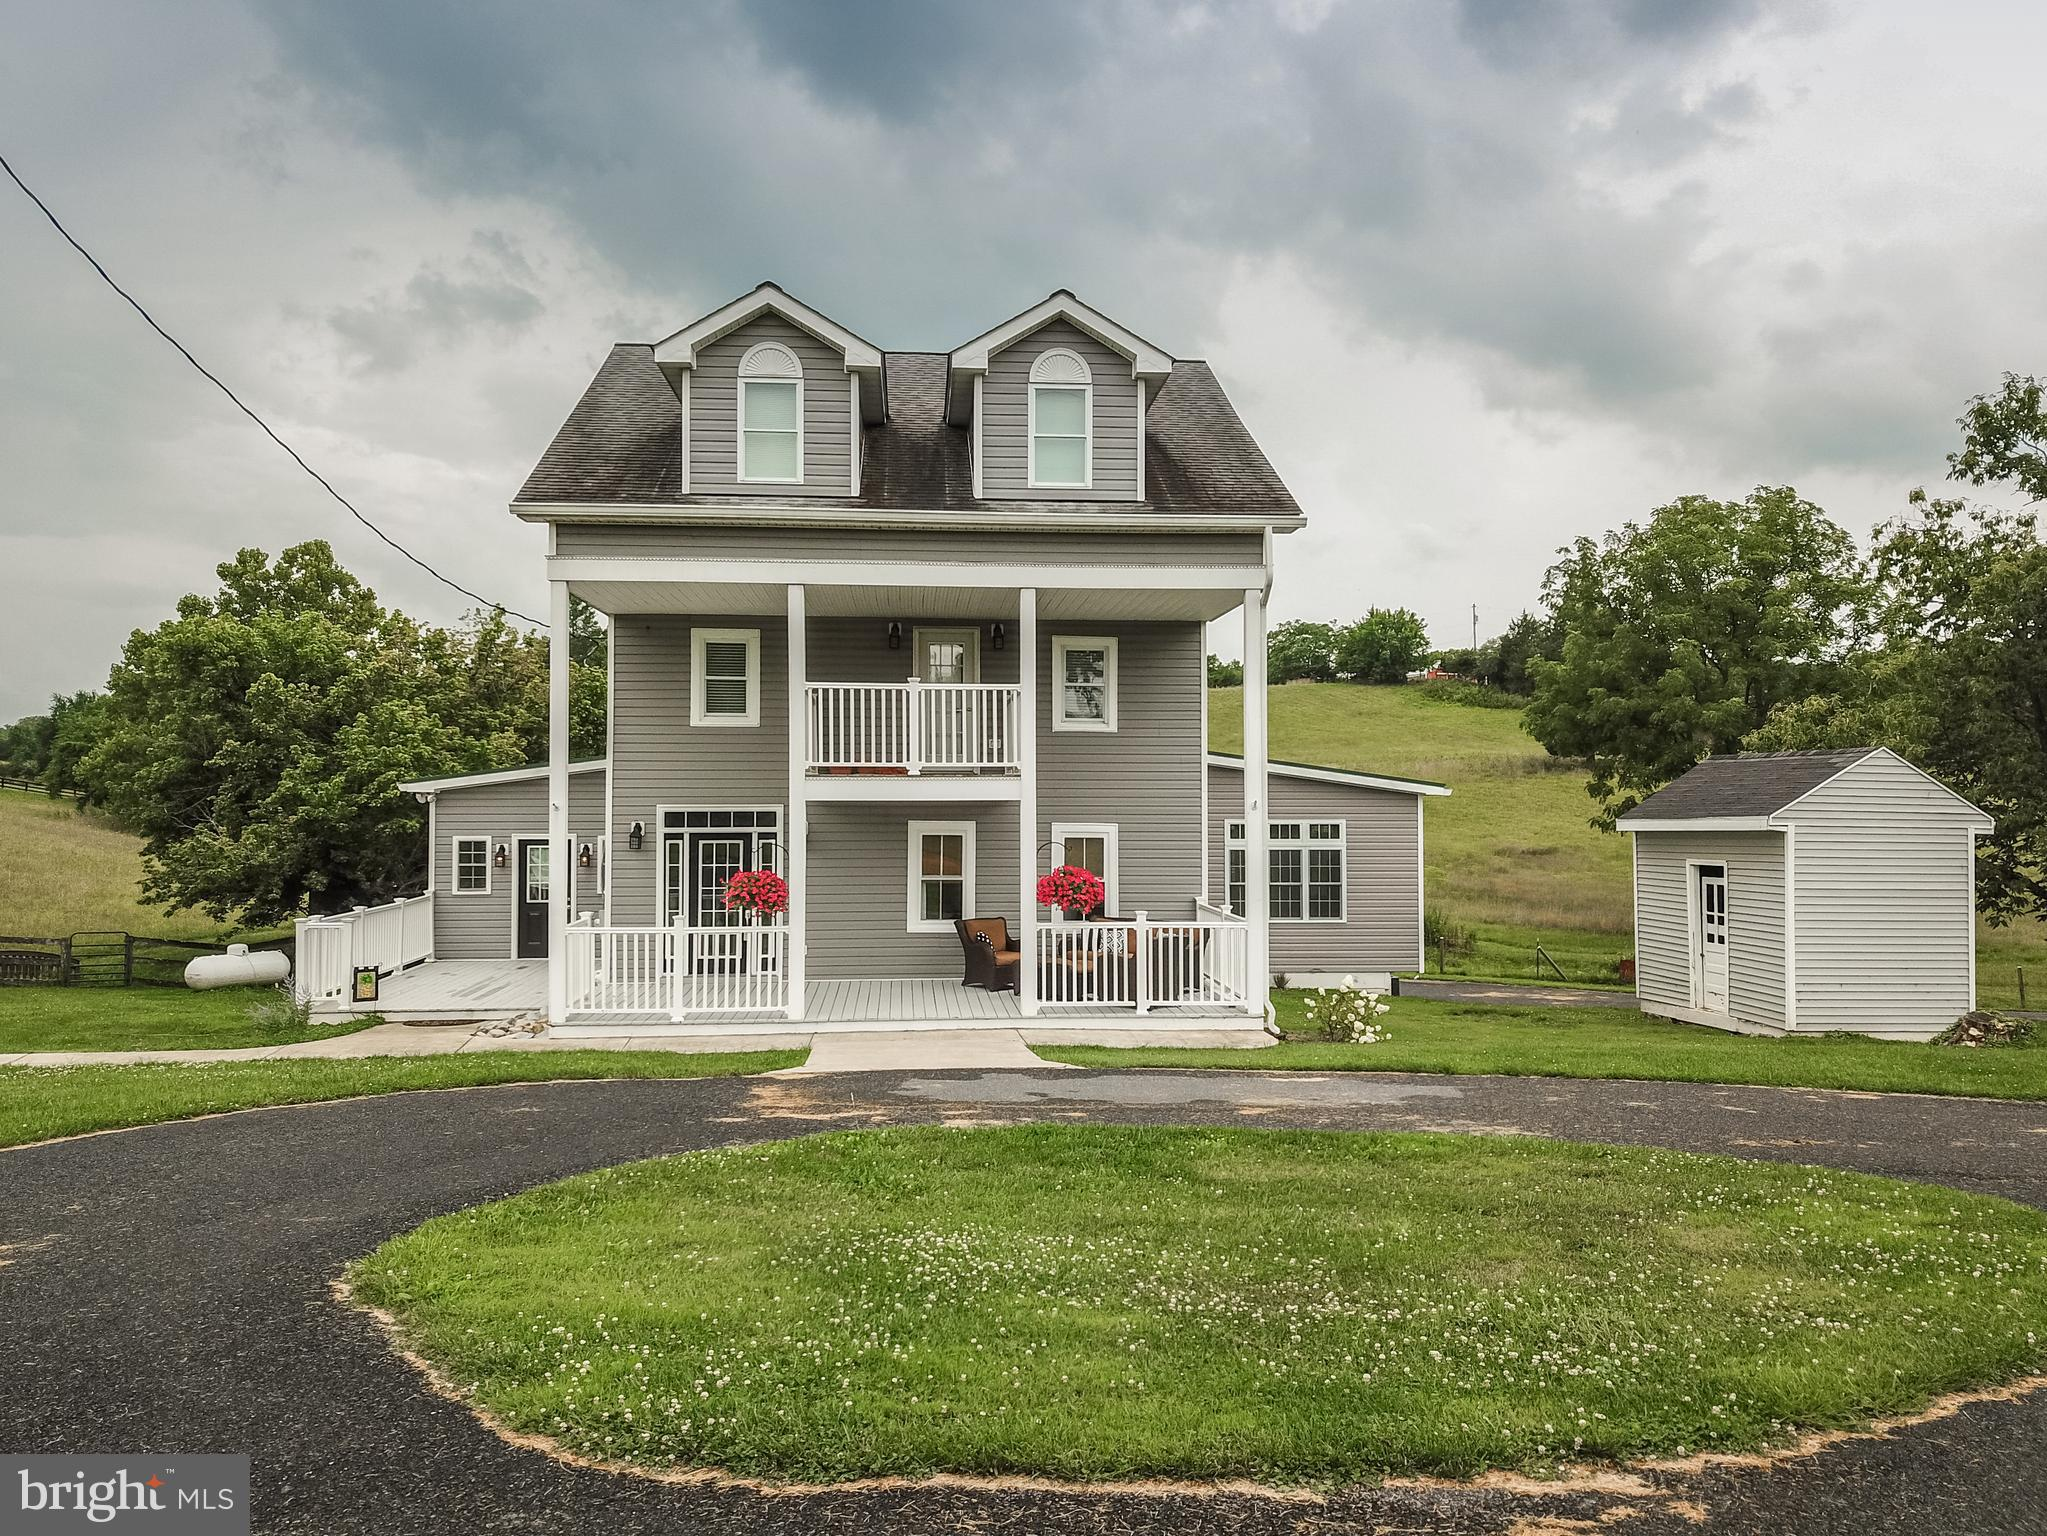 3525 OLD CHARLES TOWN ROAD, BERRYVILLE, VA 22611